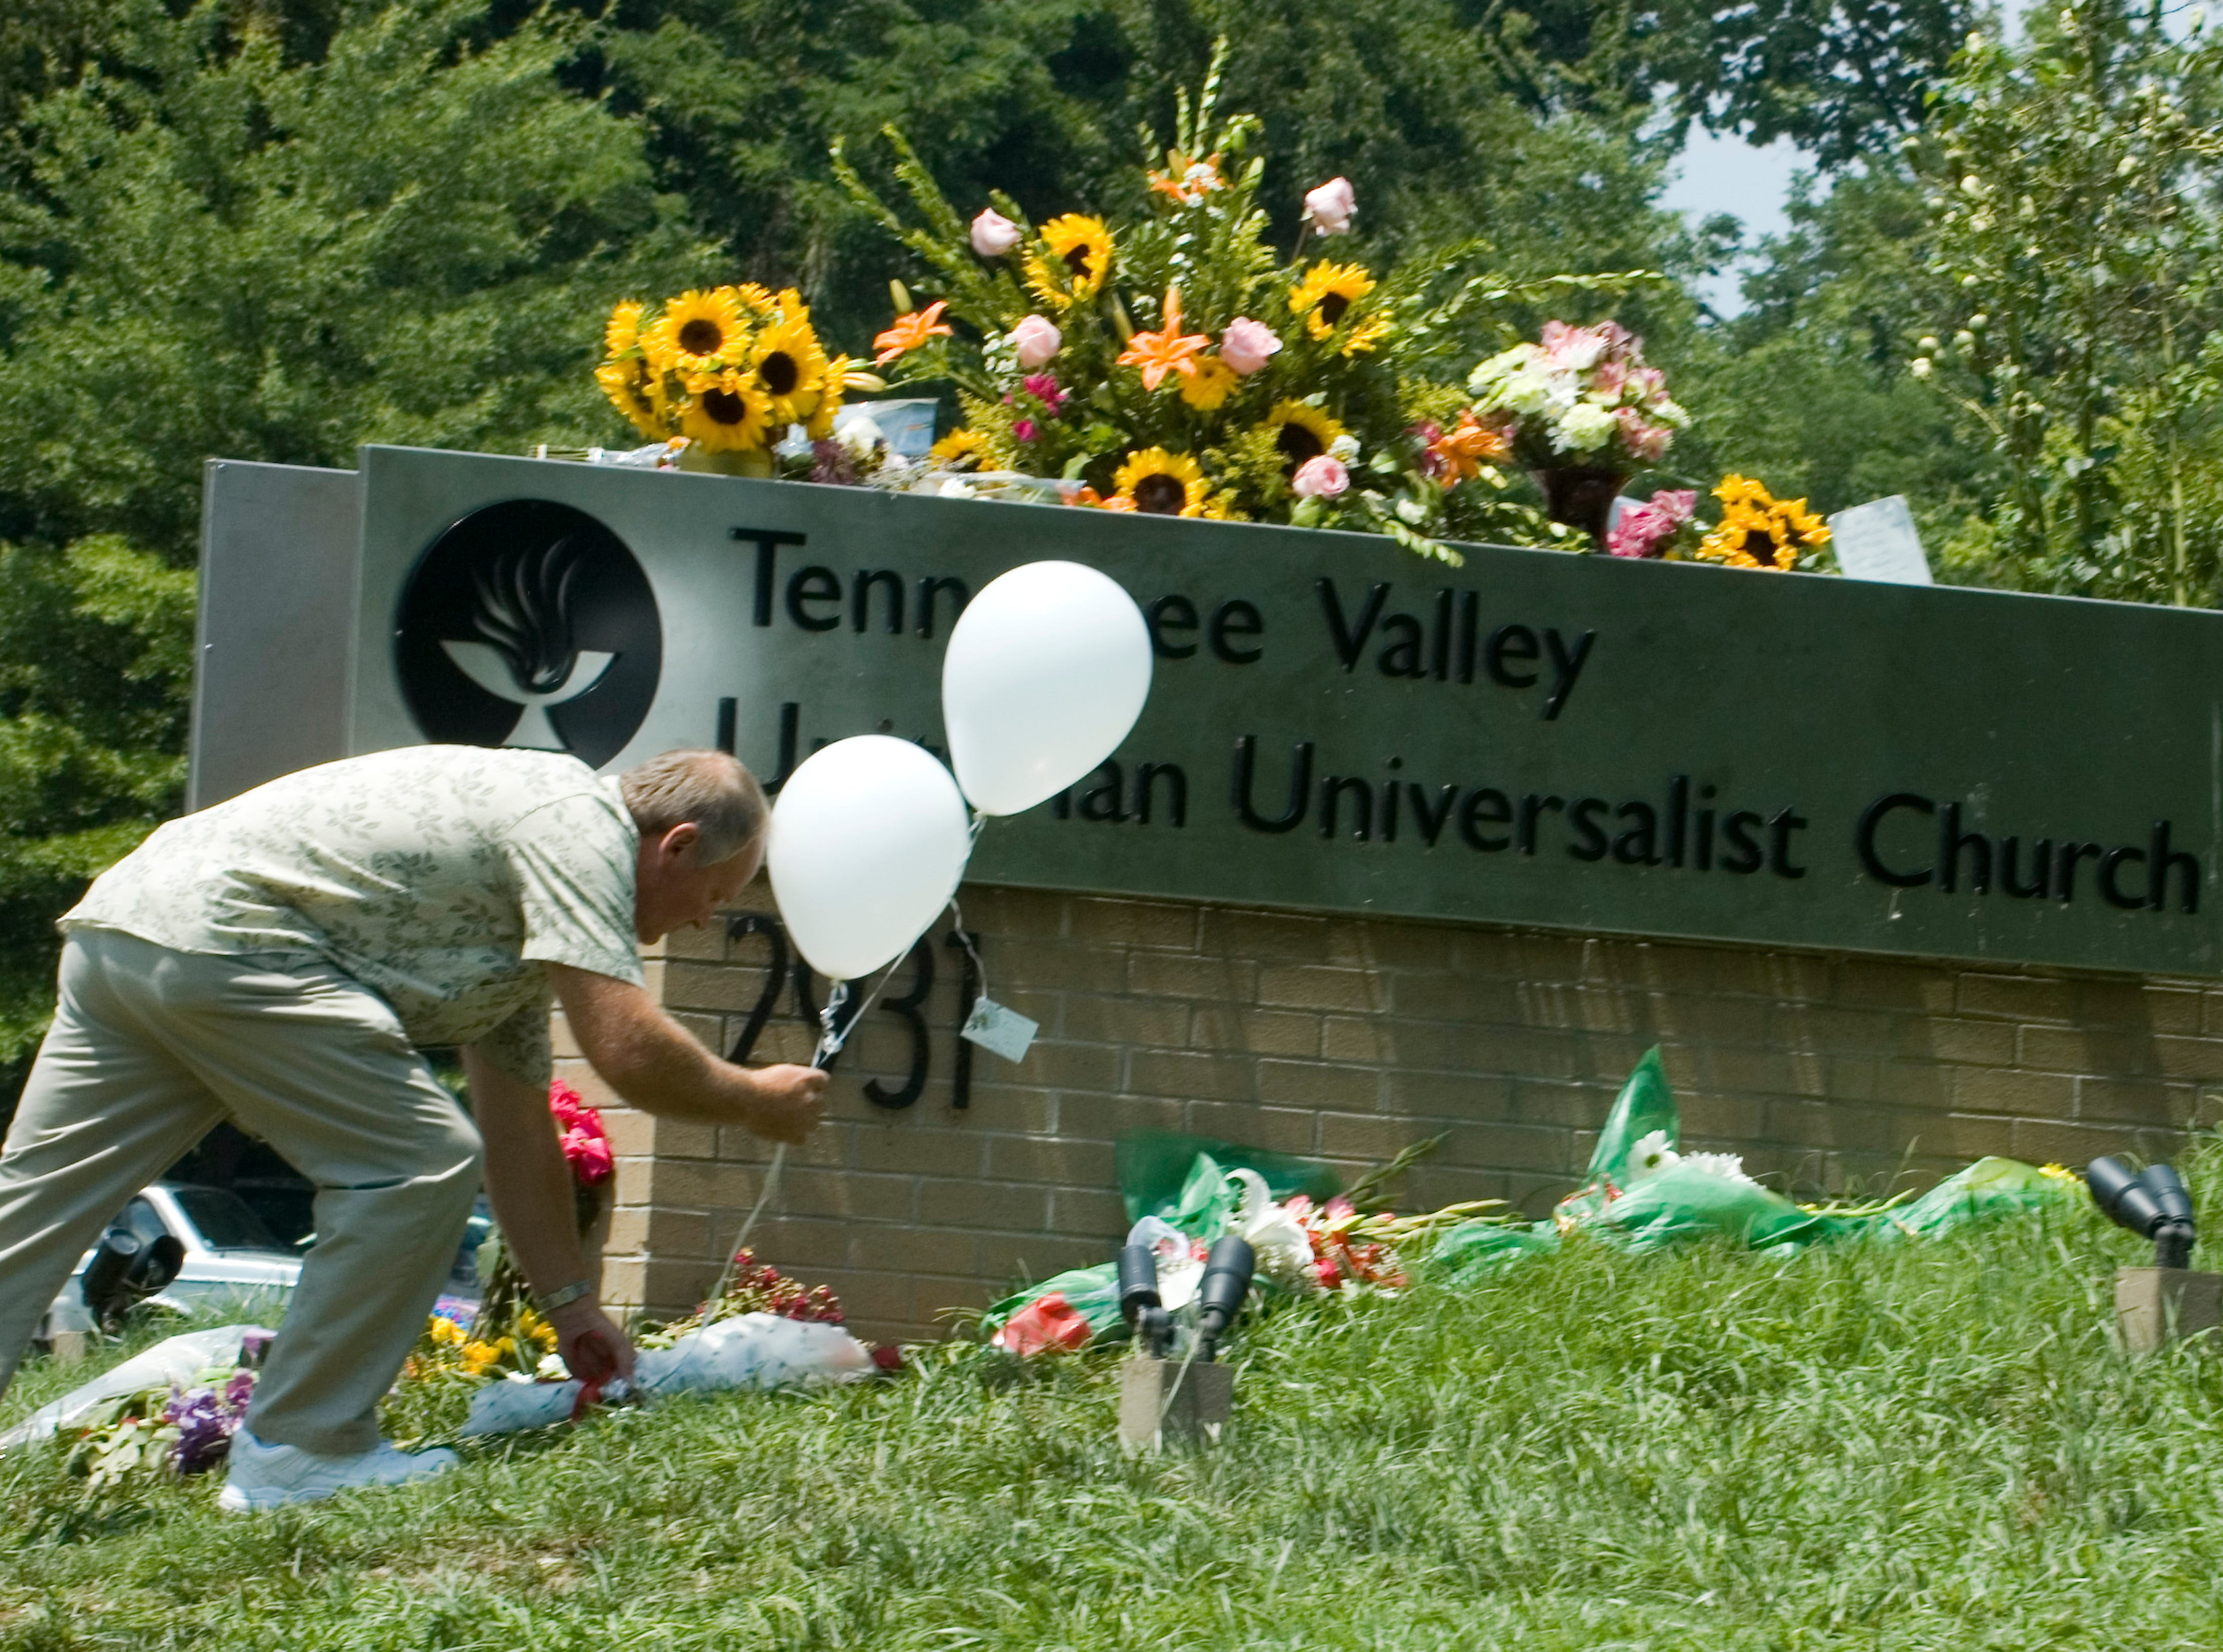 Tom McCosh from the Lighthouse Christian Fellowship in Madisonville, Tn. places of bouquet of eight roses and two white balloons that represent the church members killed and injured in the Sunday shooting at the Tennessee Valley Unitarian Universalist Church.